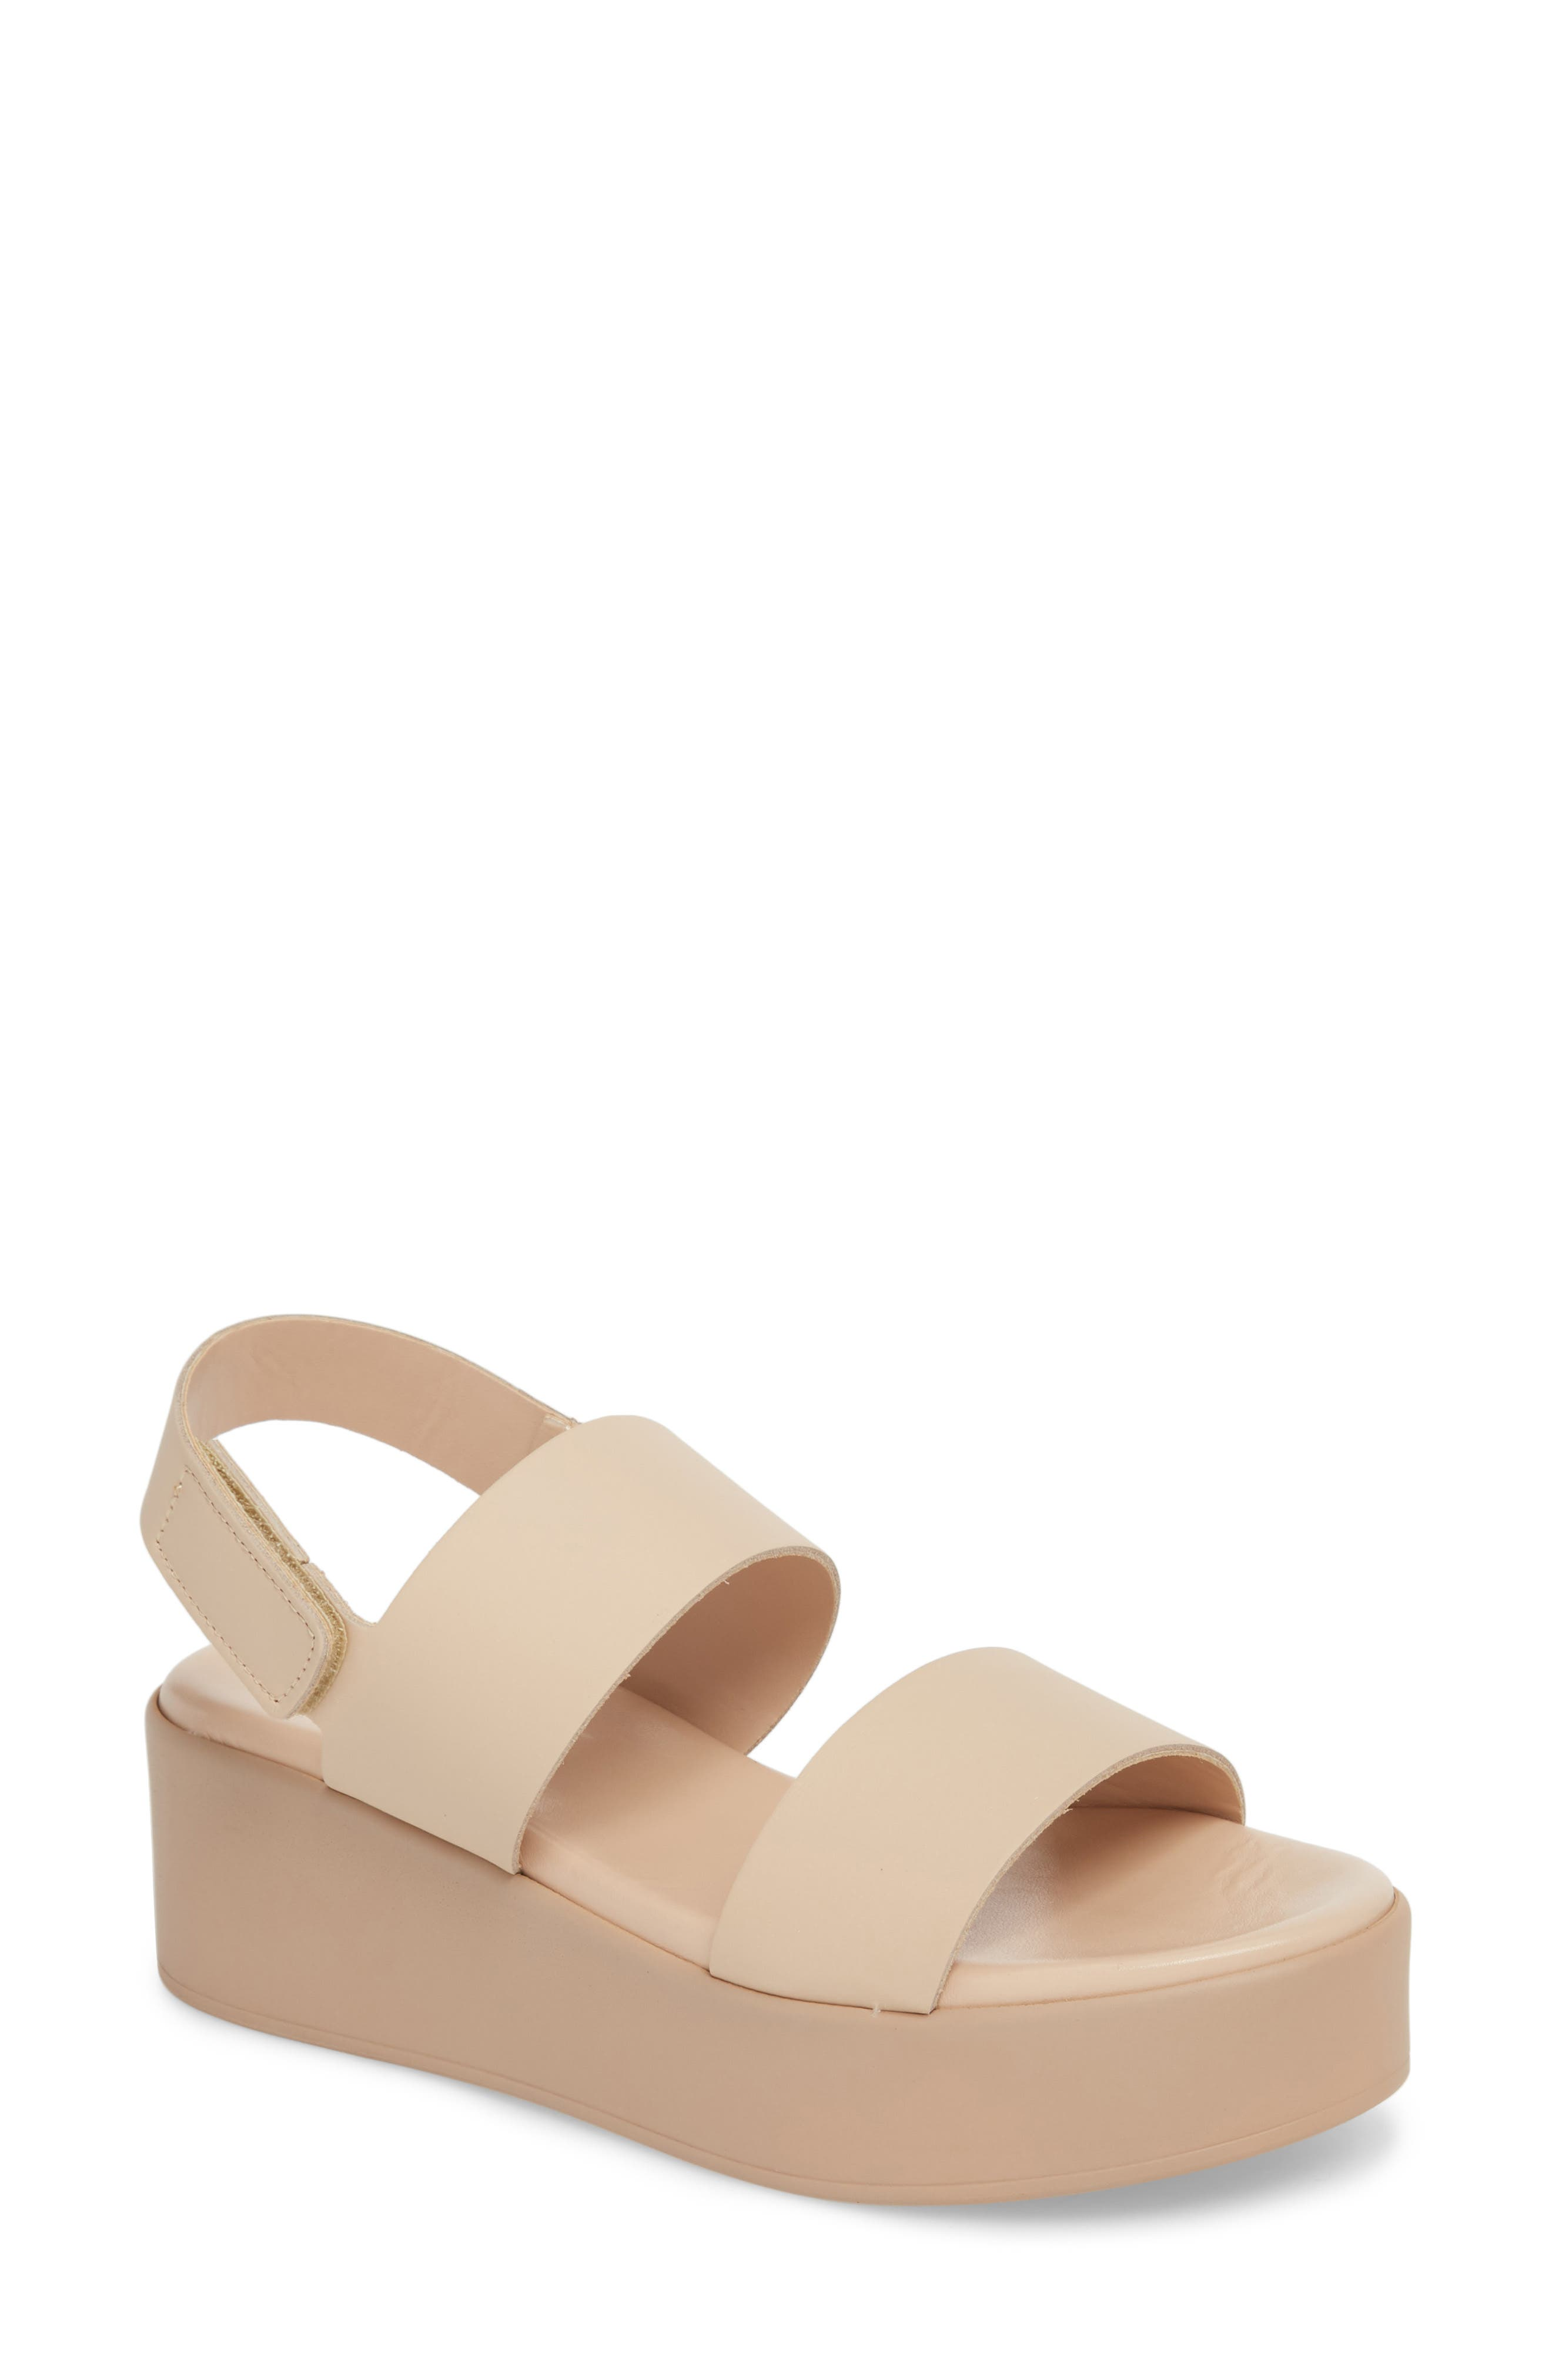 Rachel Platform Wedge Sandal,                         Main,                         color, 250